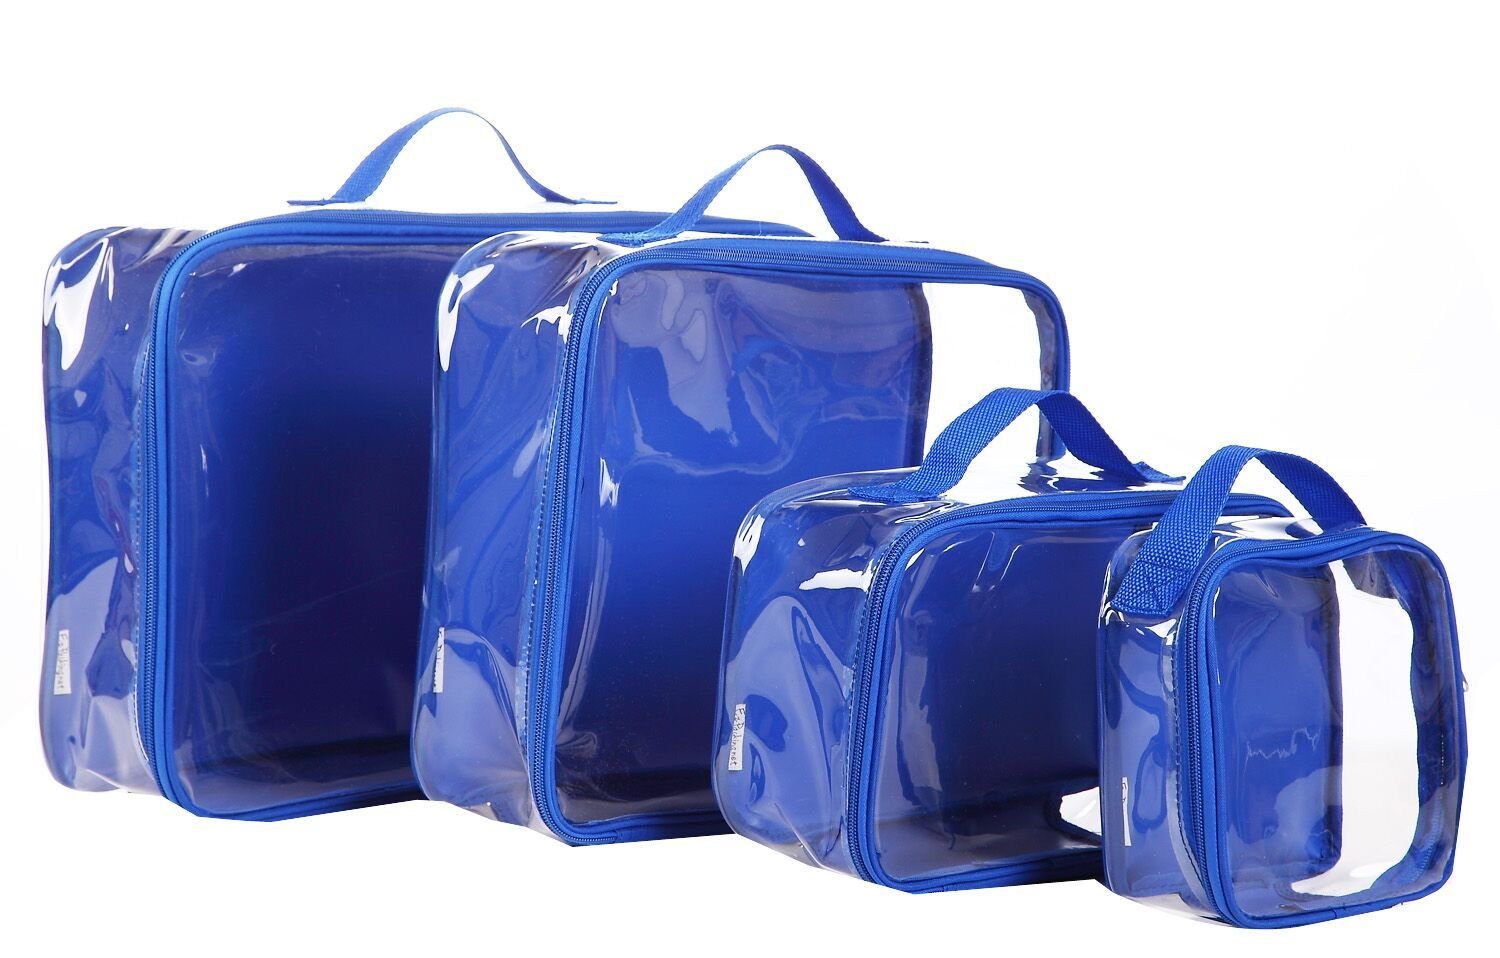 Packing cube set in royal blue